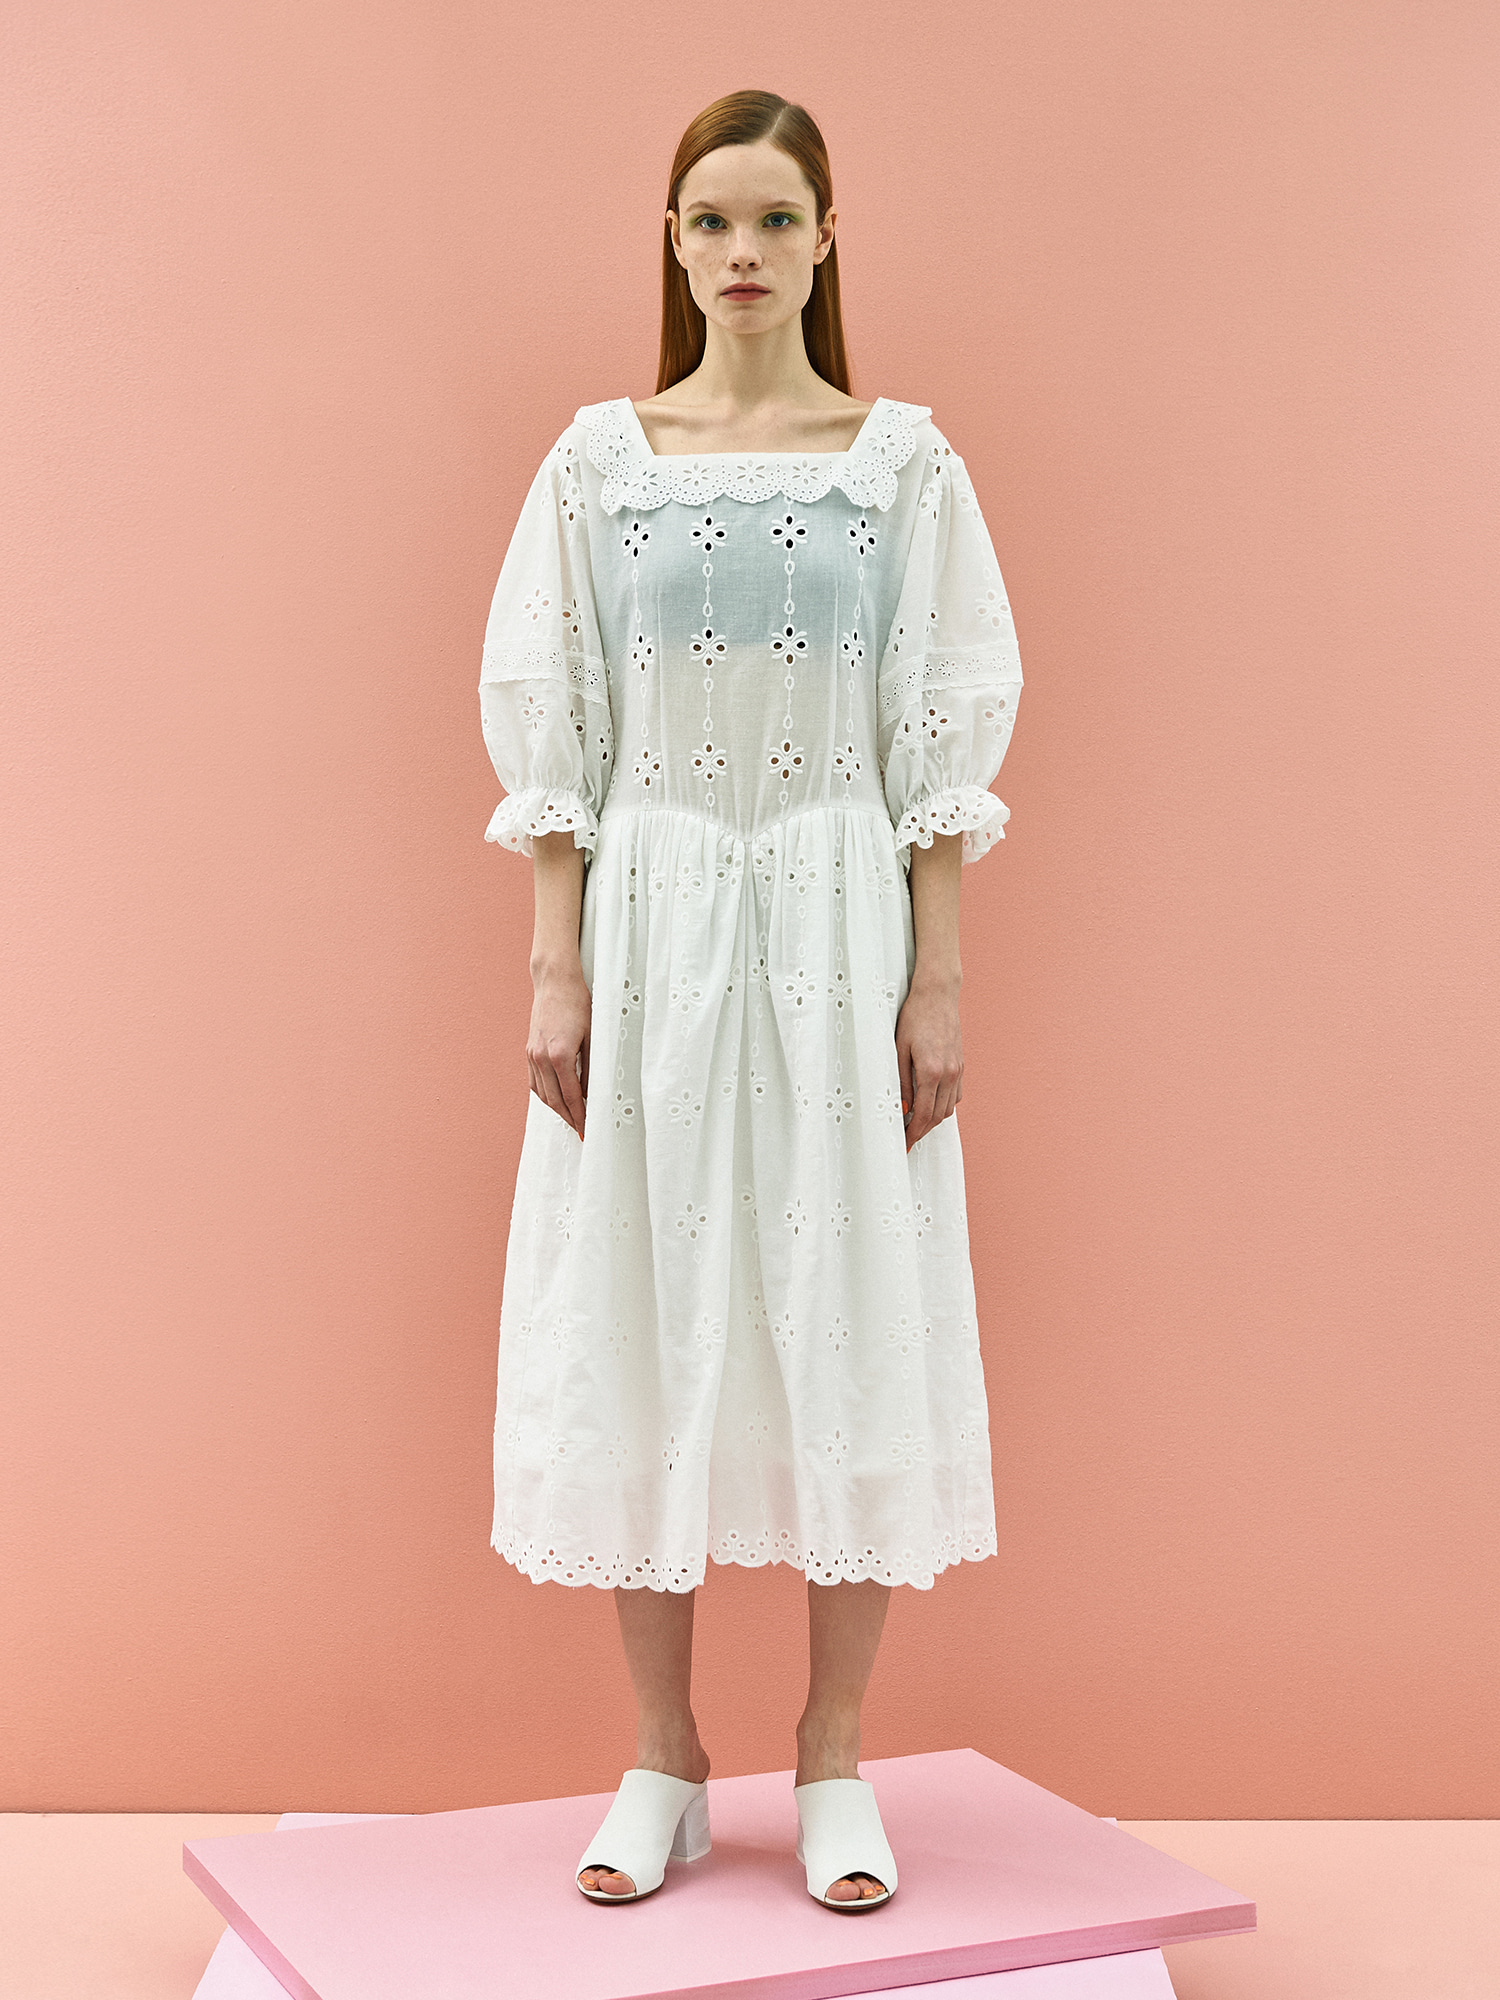 [미드세일 30%할인]Girlish Lace Cotton Dress in White